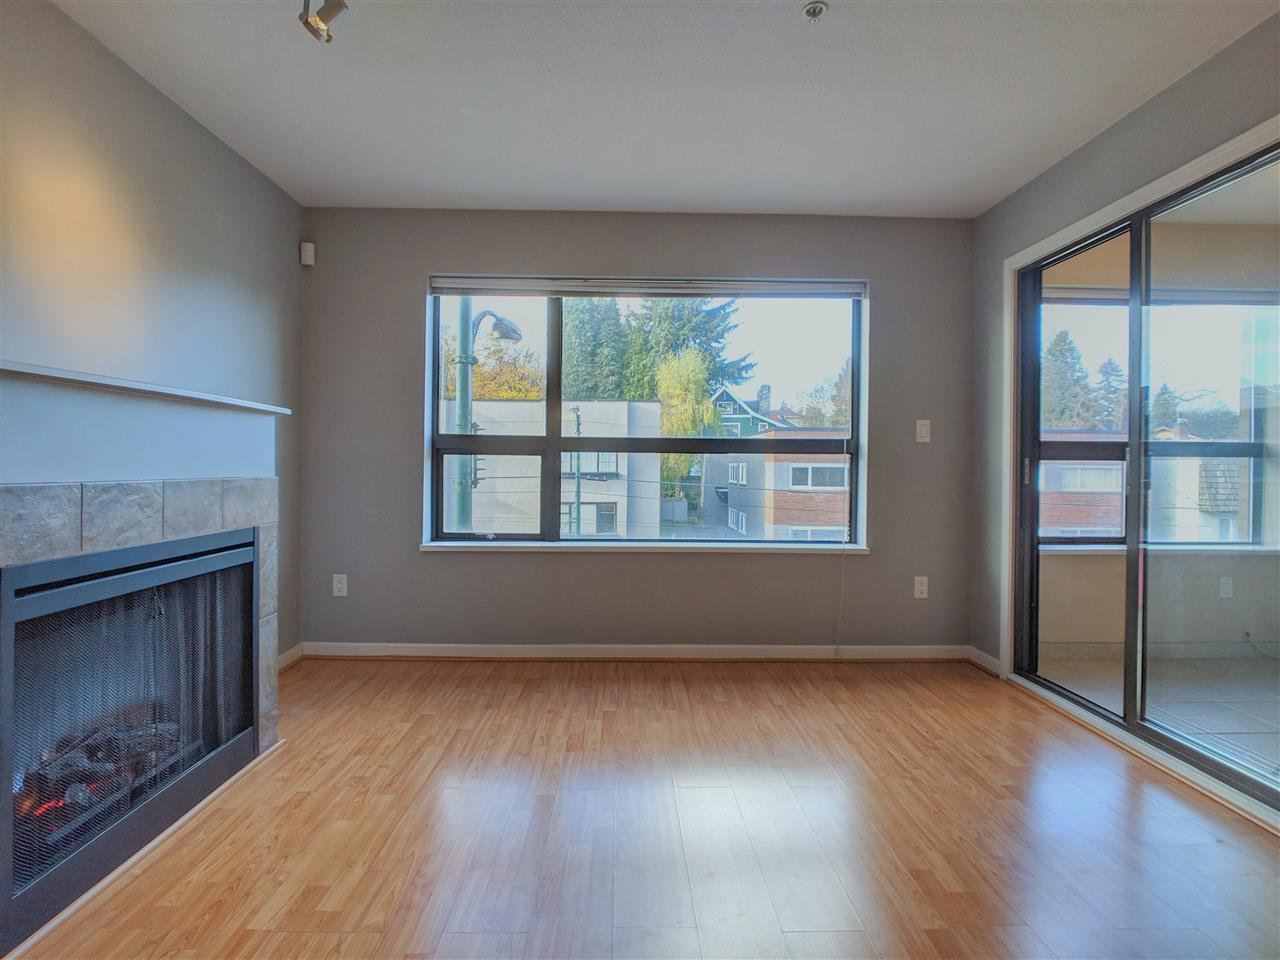 Main Photo: 410 997 W 22 AVENUE in Vancouver: Cambie Condo for sale (Vancouver West)  : MLS®# R2336421